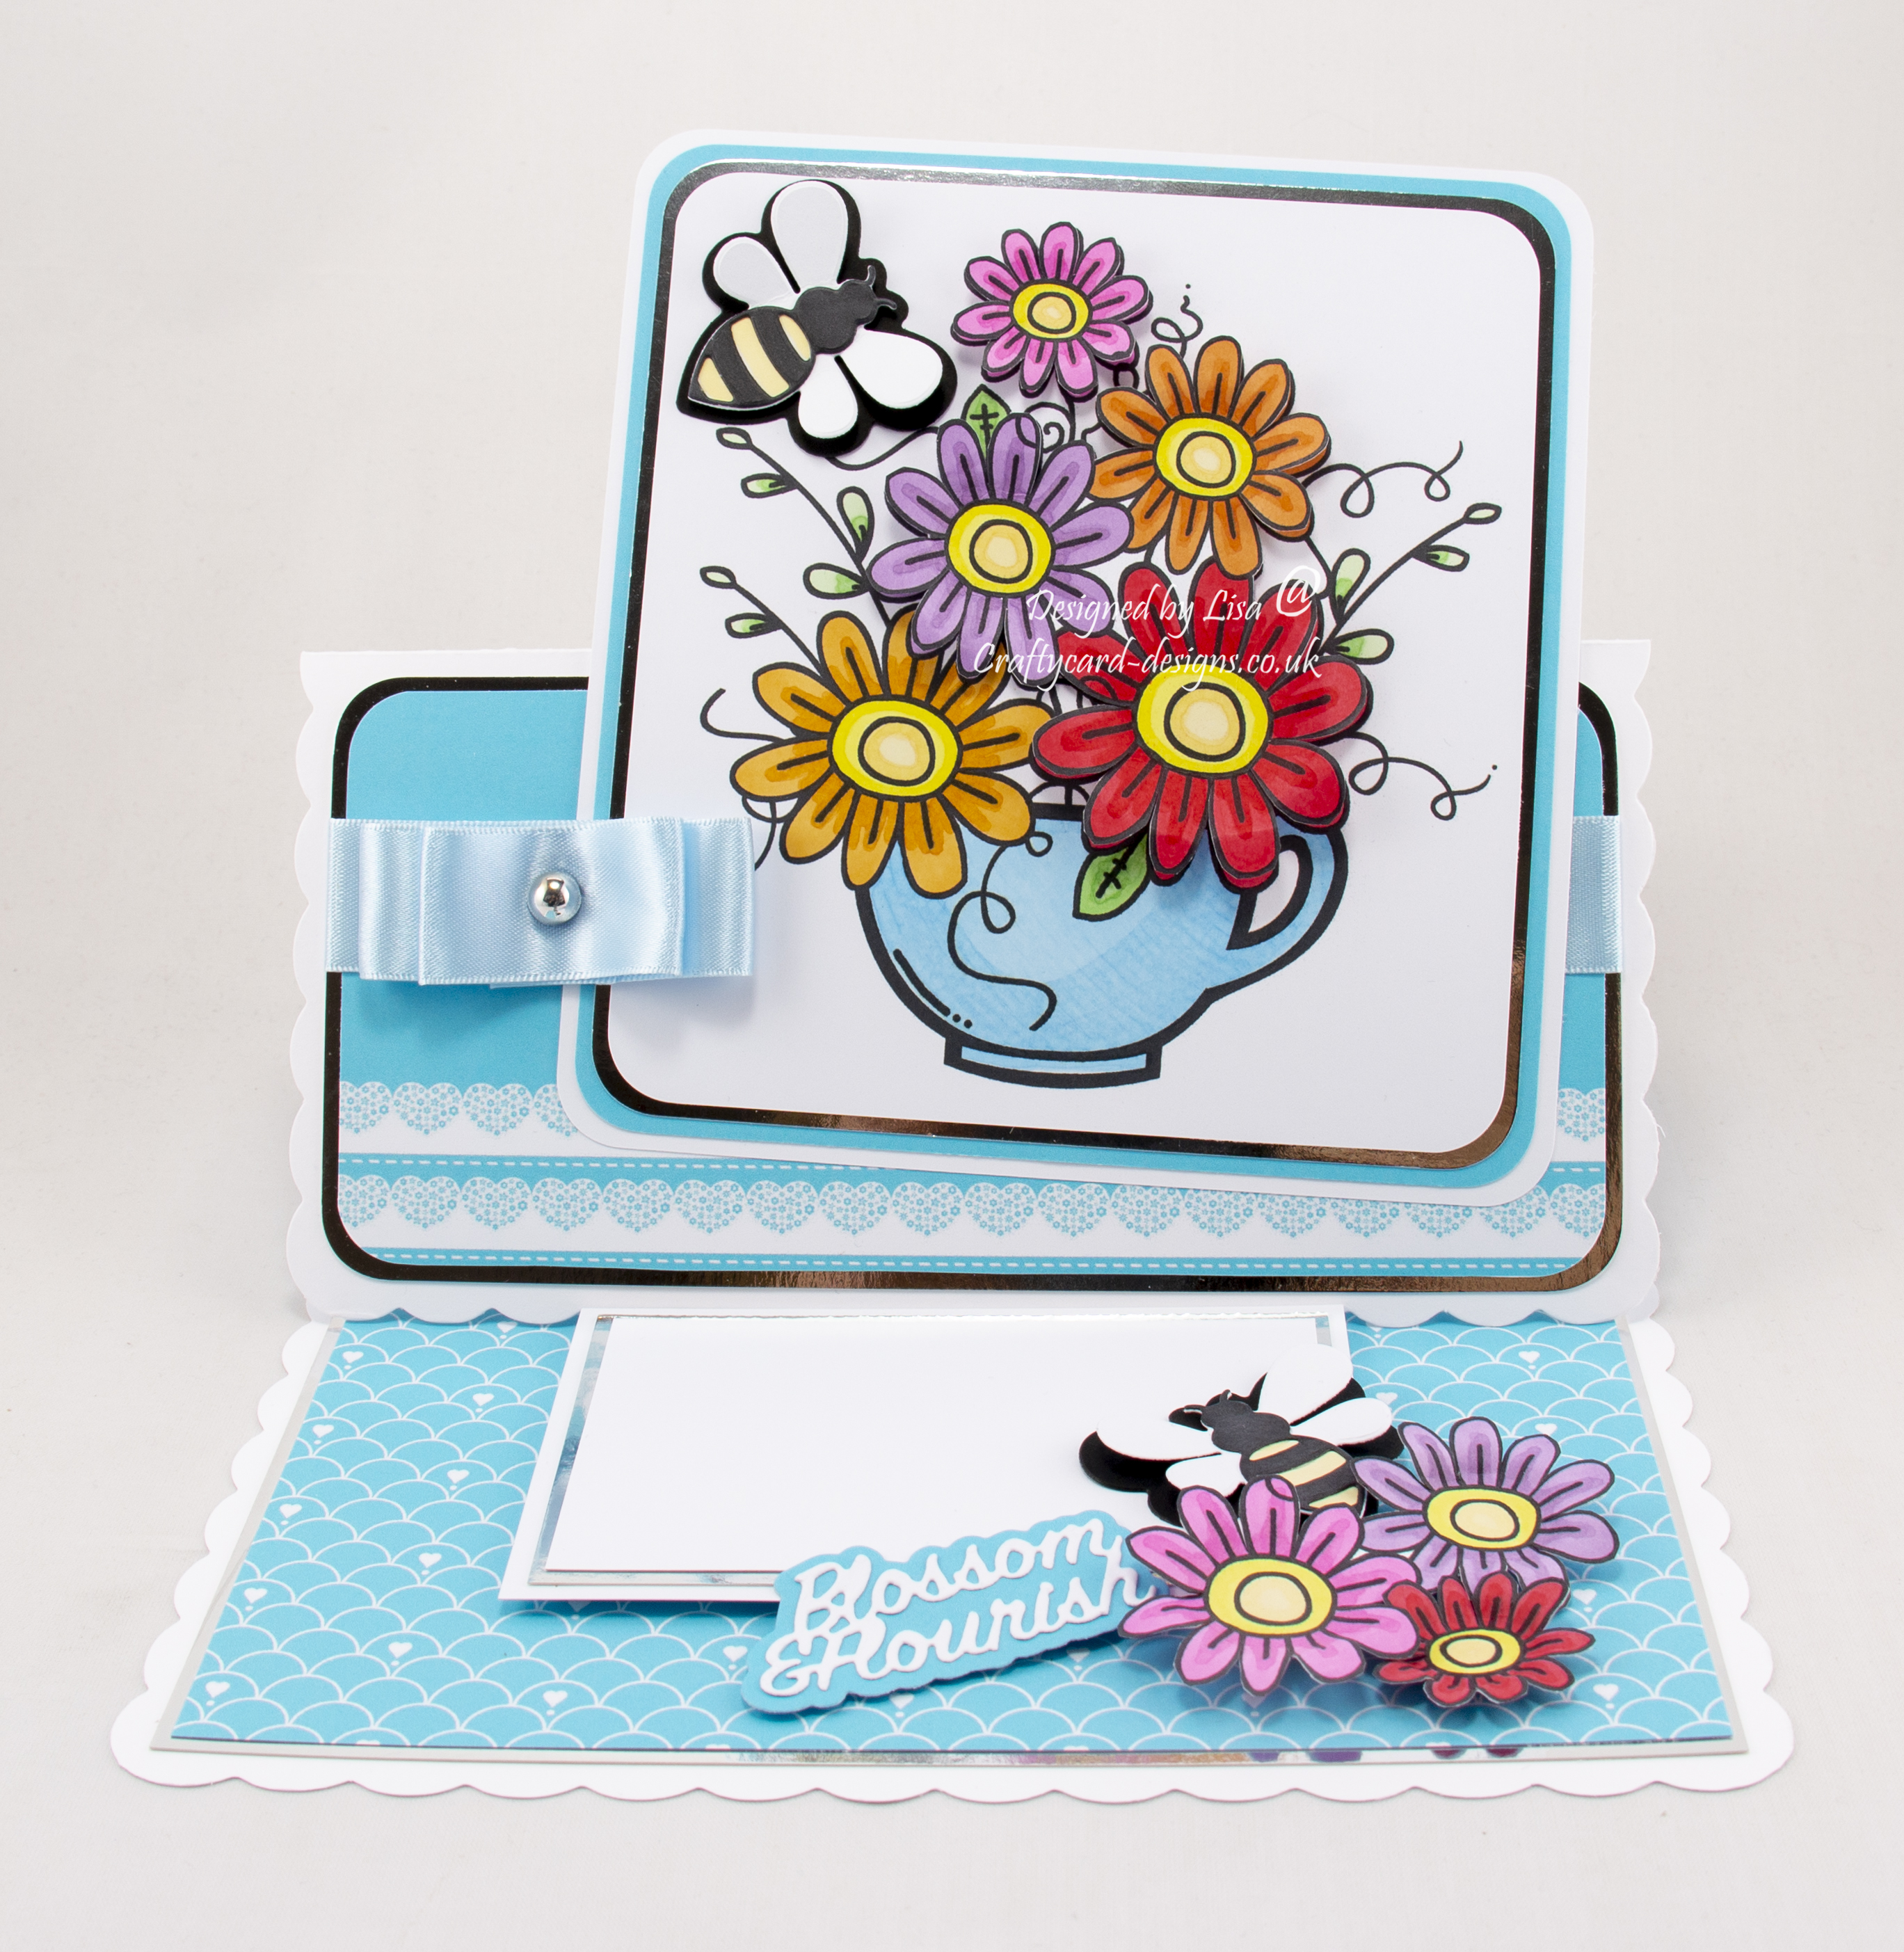 Teacup Flowers digi image from Bugaboo stamps